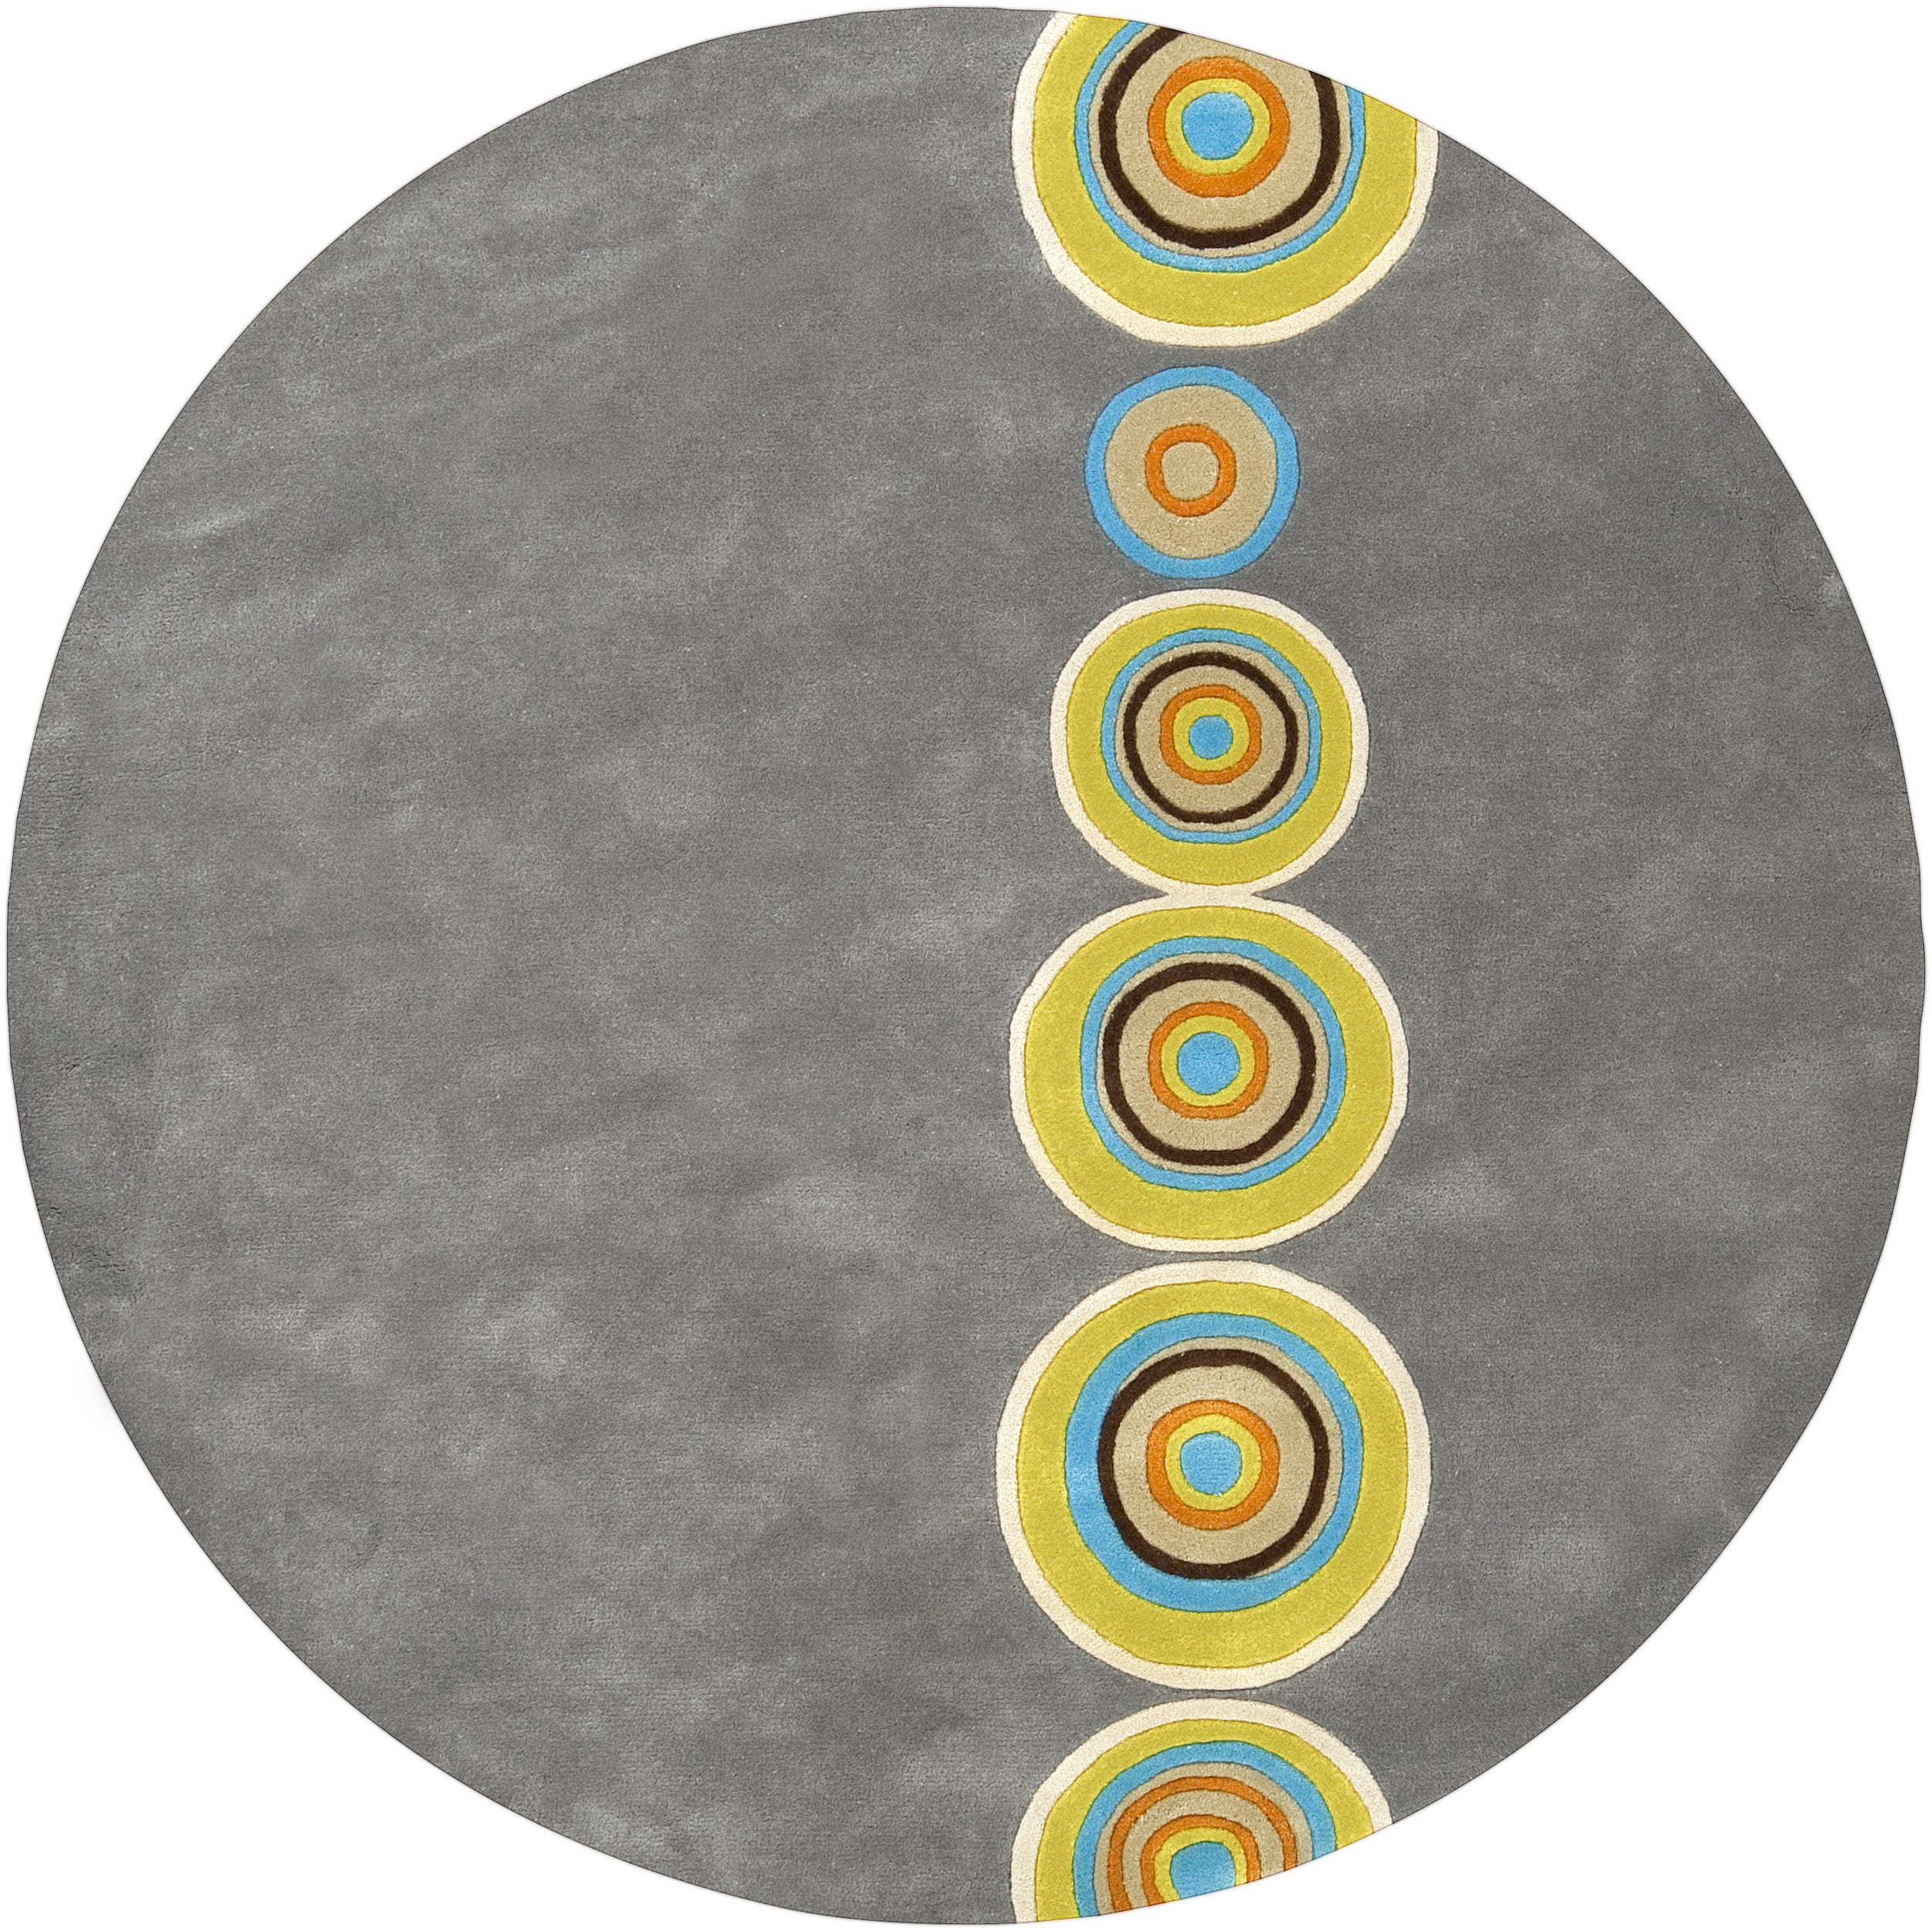 Palm Canyon Tecopa Hand-tufted Multicolored Circles Geometric Dames New Zealand Wool Area Rug - 6' Round